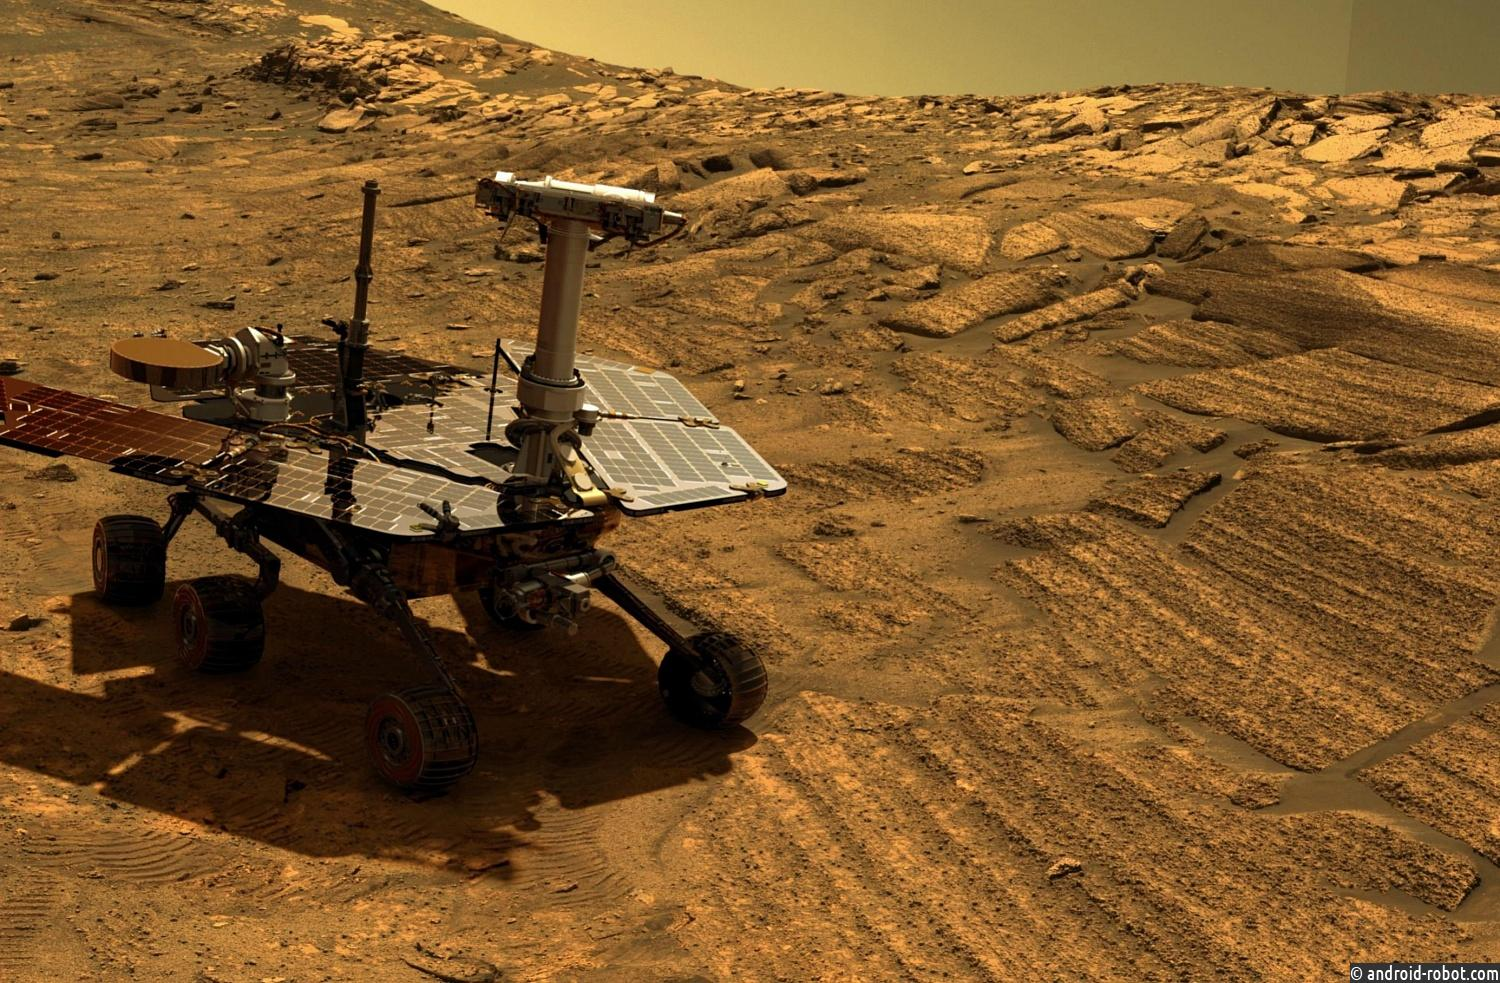 nasa curiosity rover pictures - HD1280×839